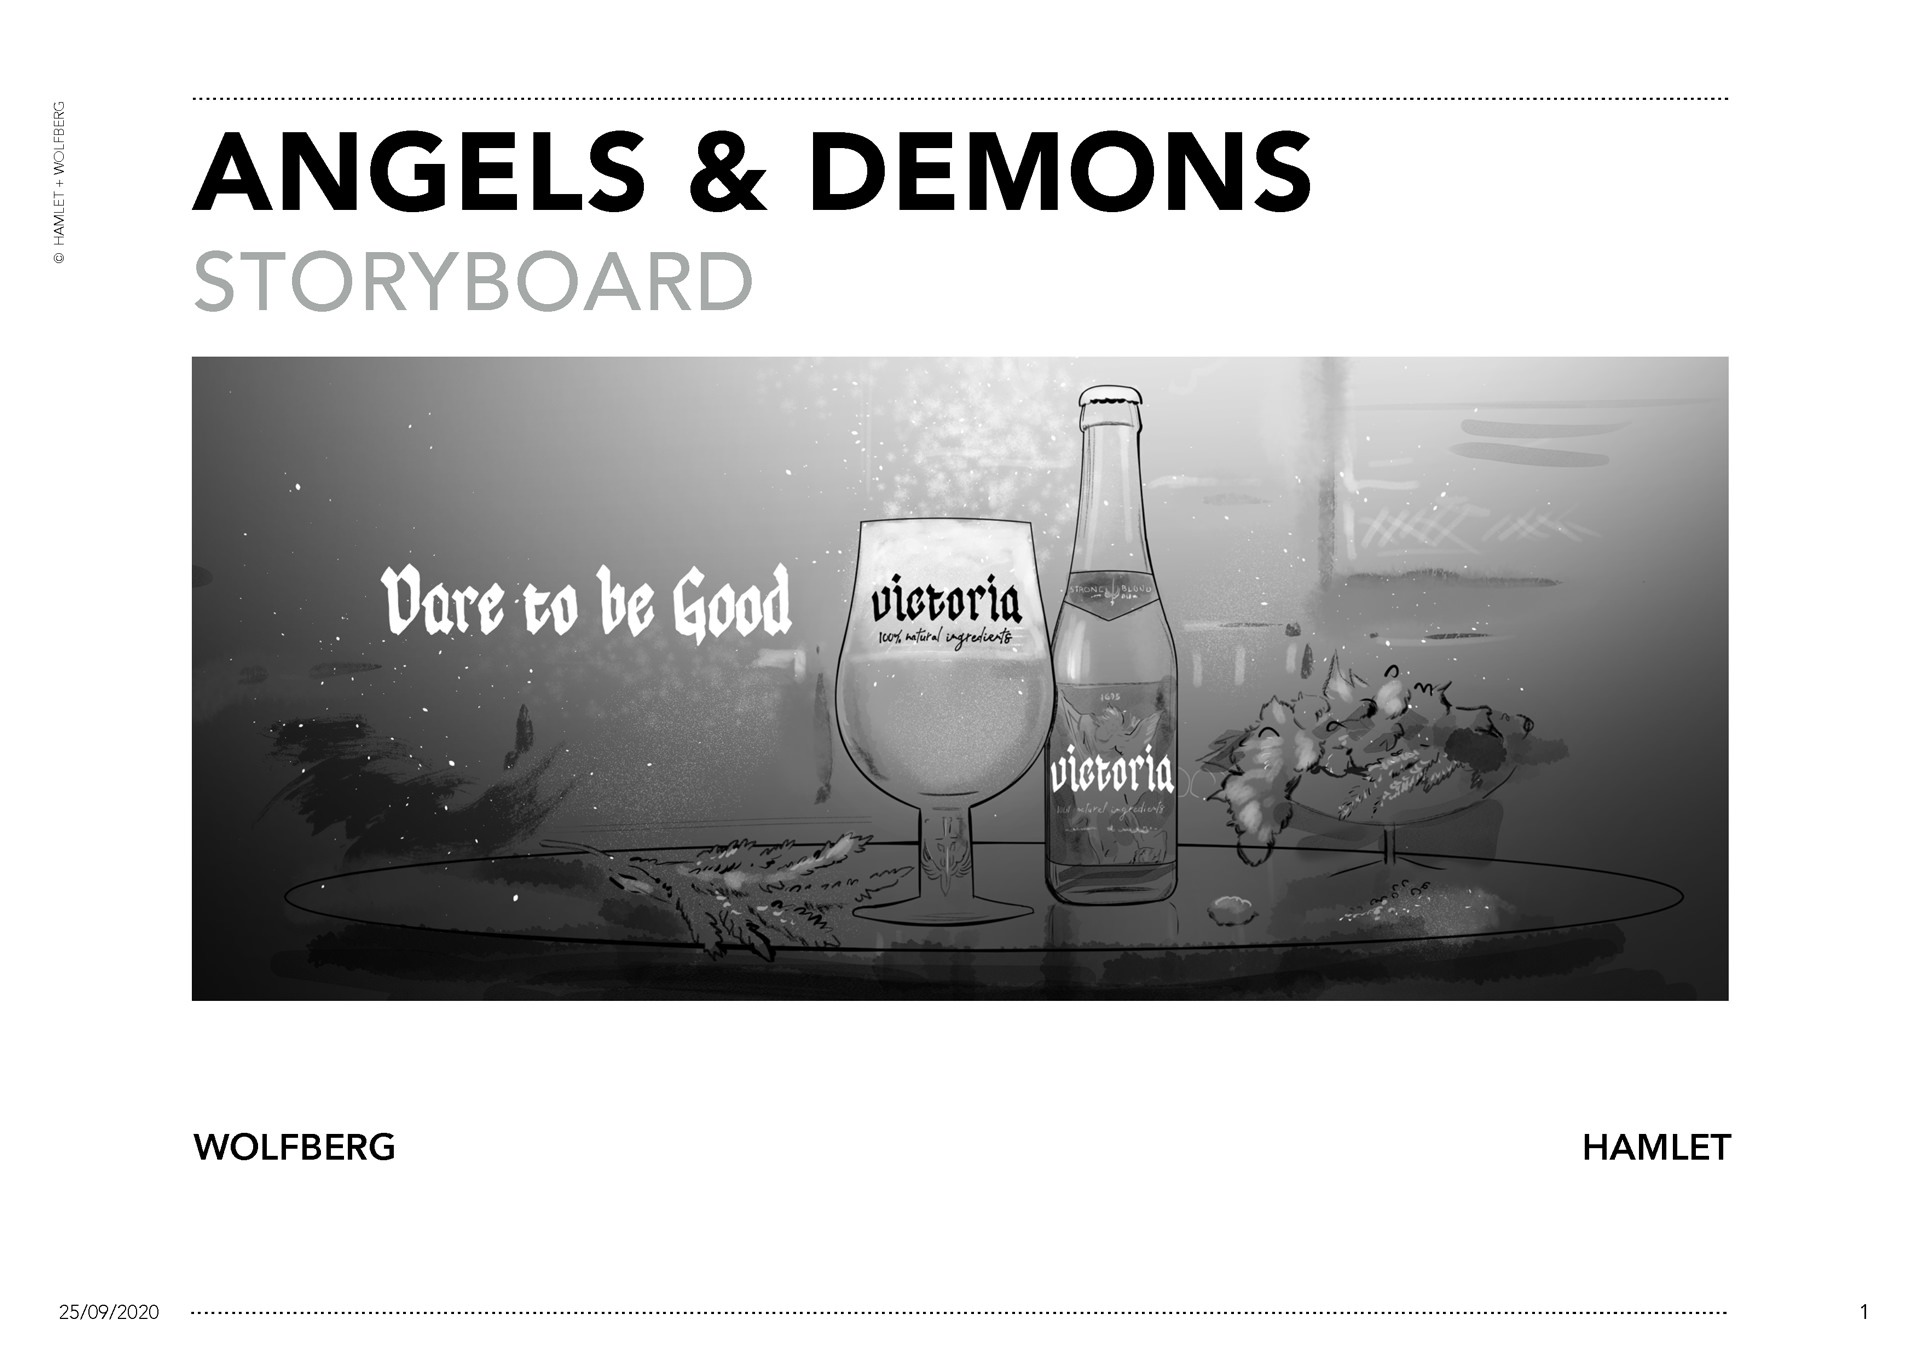 Victoria Angels & Demons storyboard 01